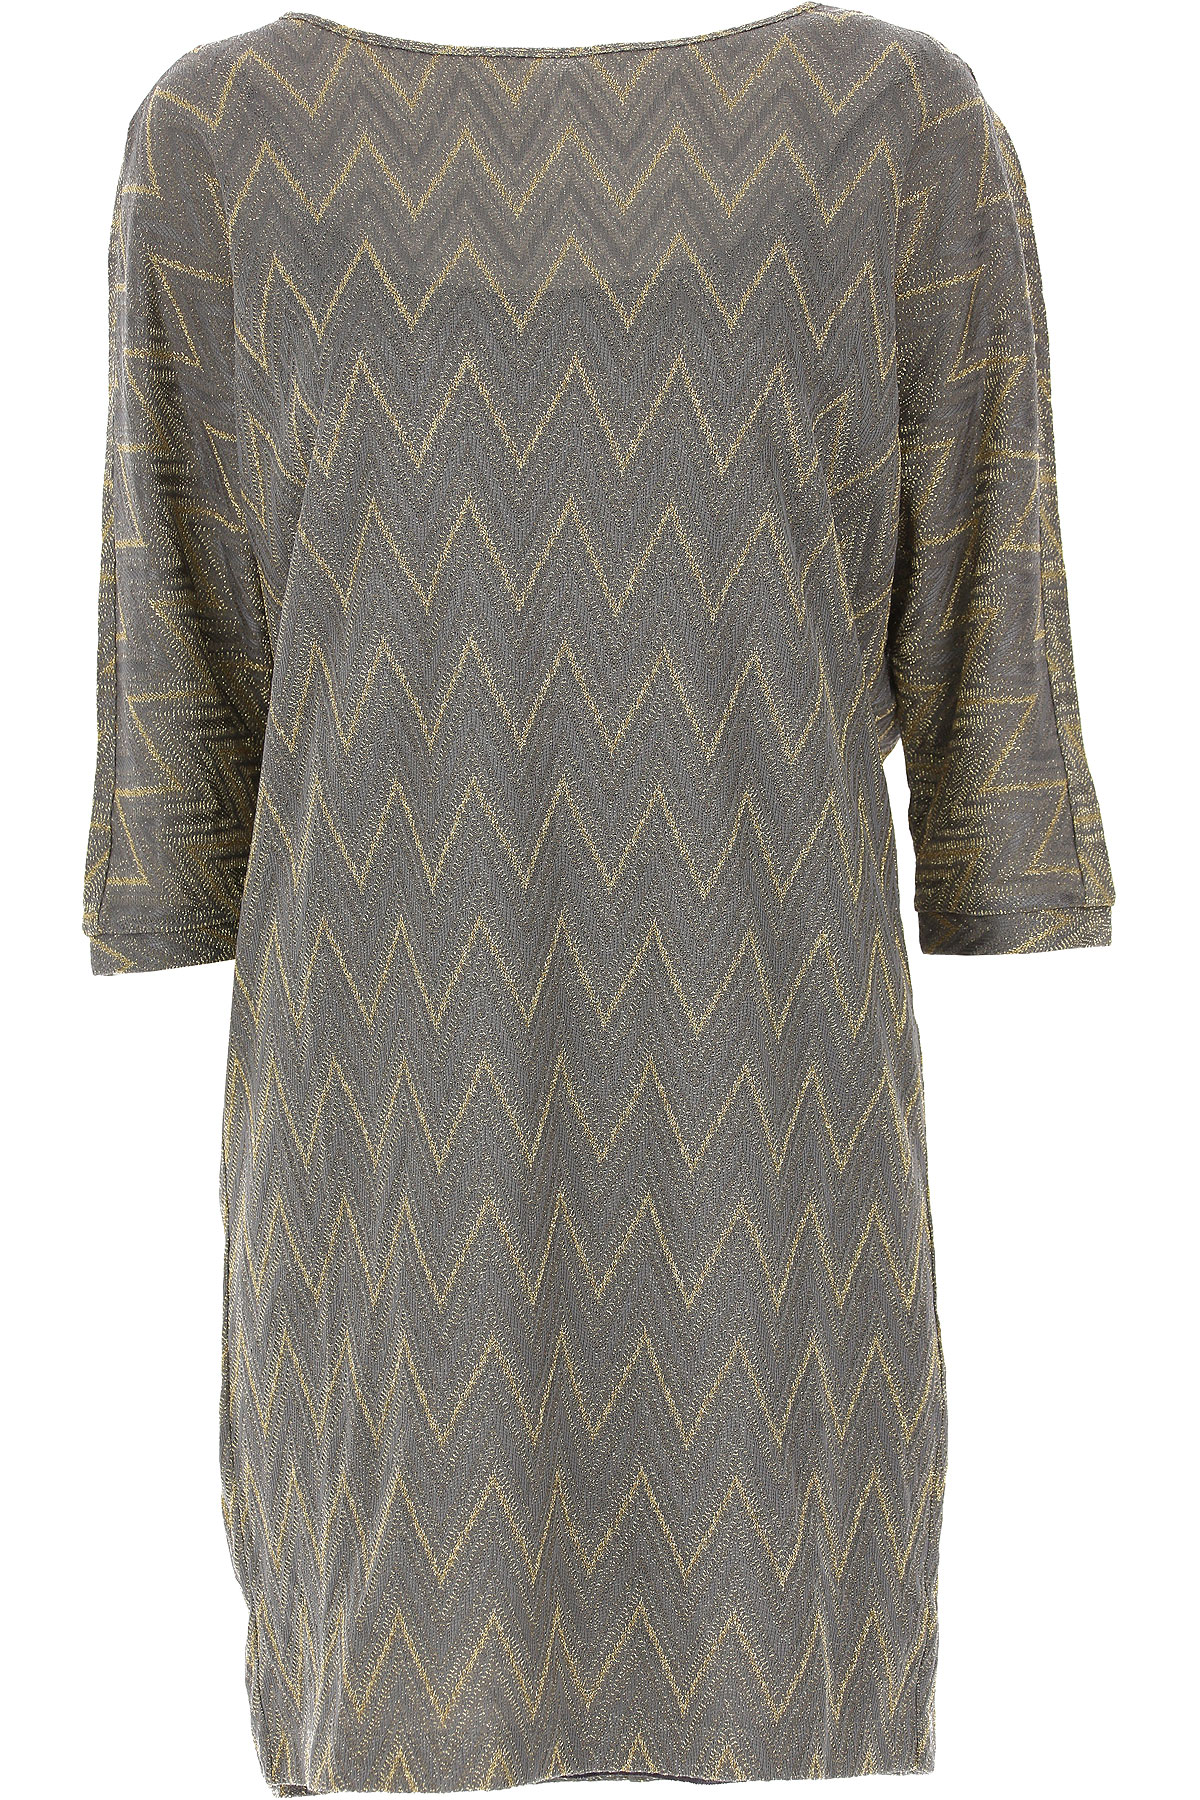 Image of Missoni Dress for Women, Evening Cocktail Party, Grey, viscosa, 2017, 6 8